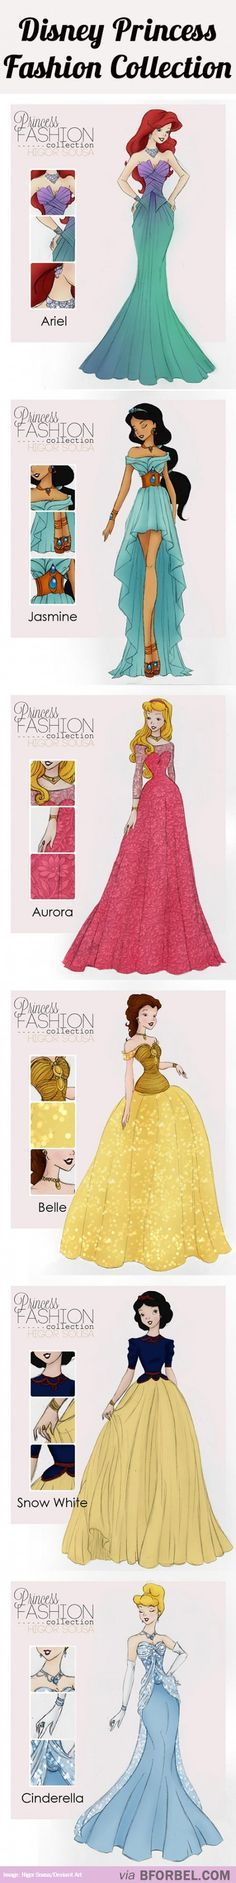 6 Disney Princess Fashion Collections…Jasmines dress is really cute! .